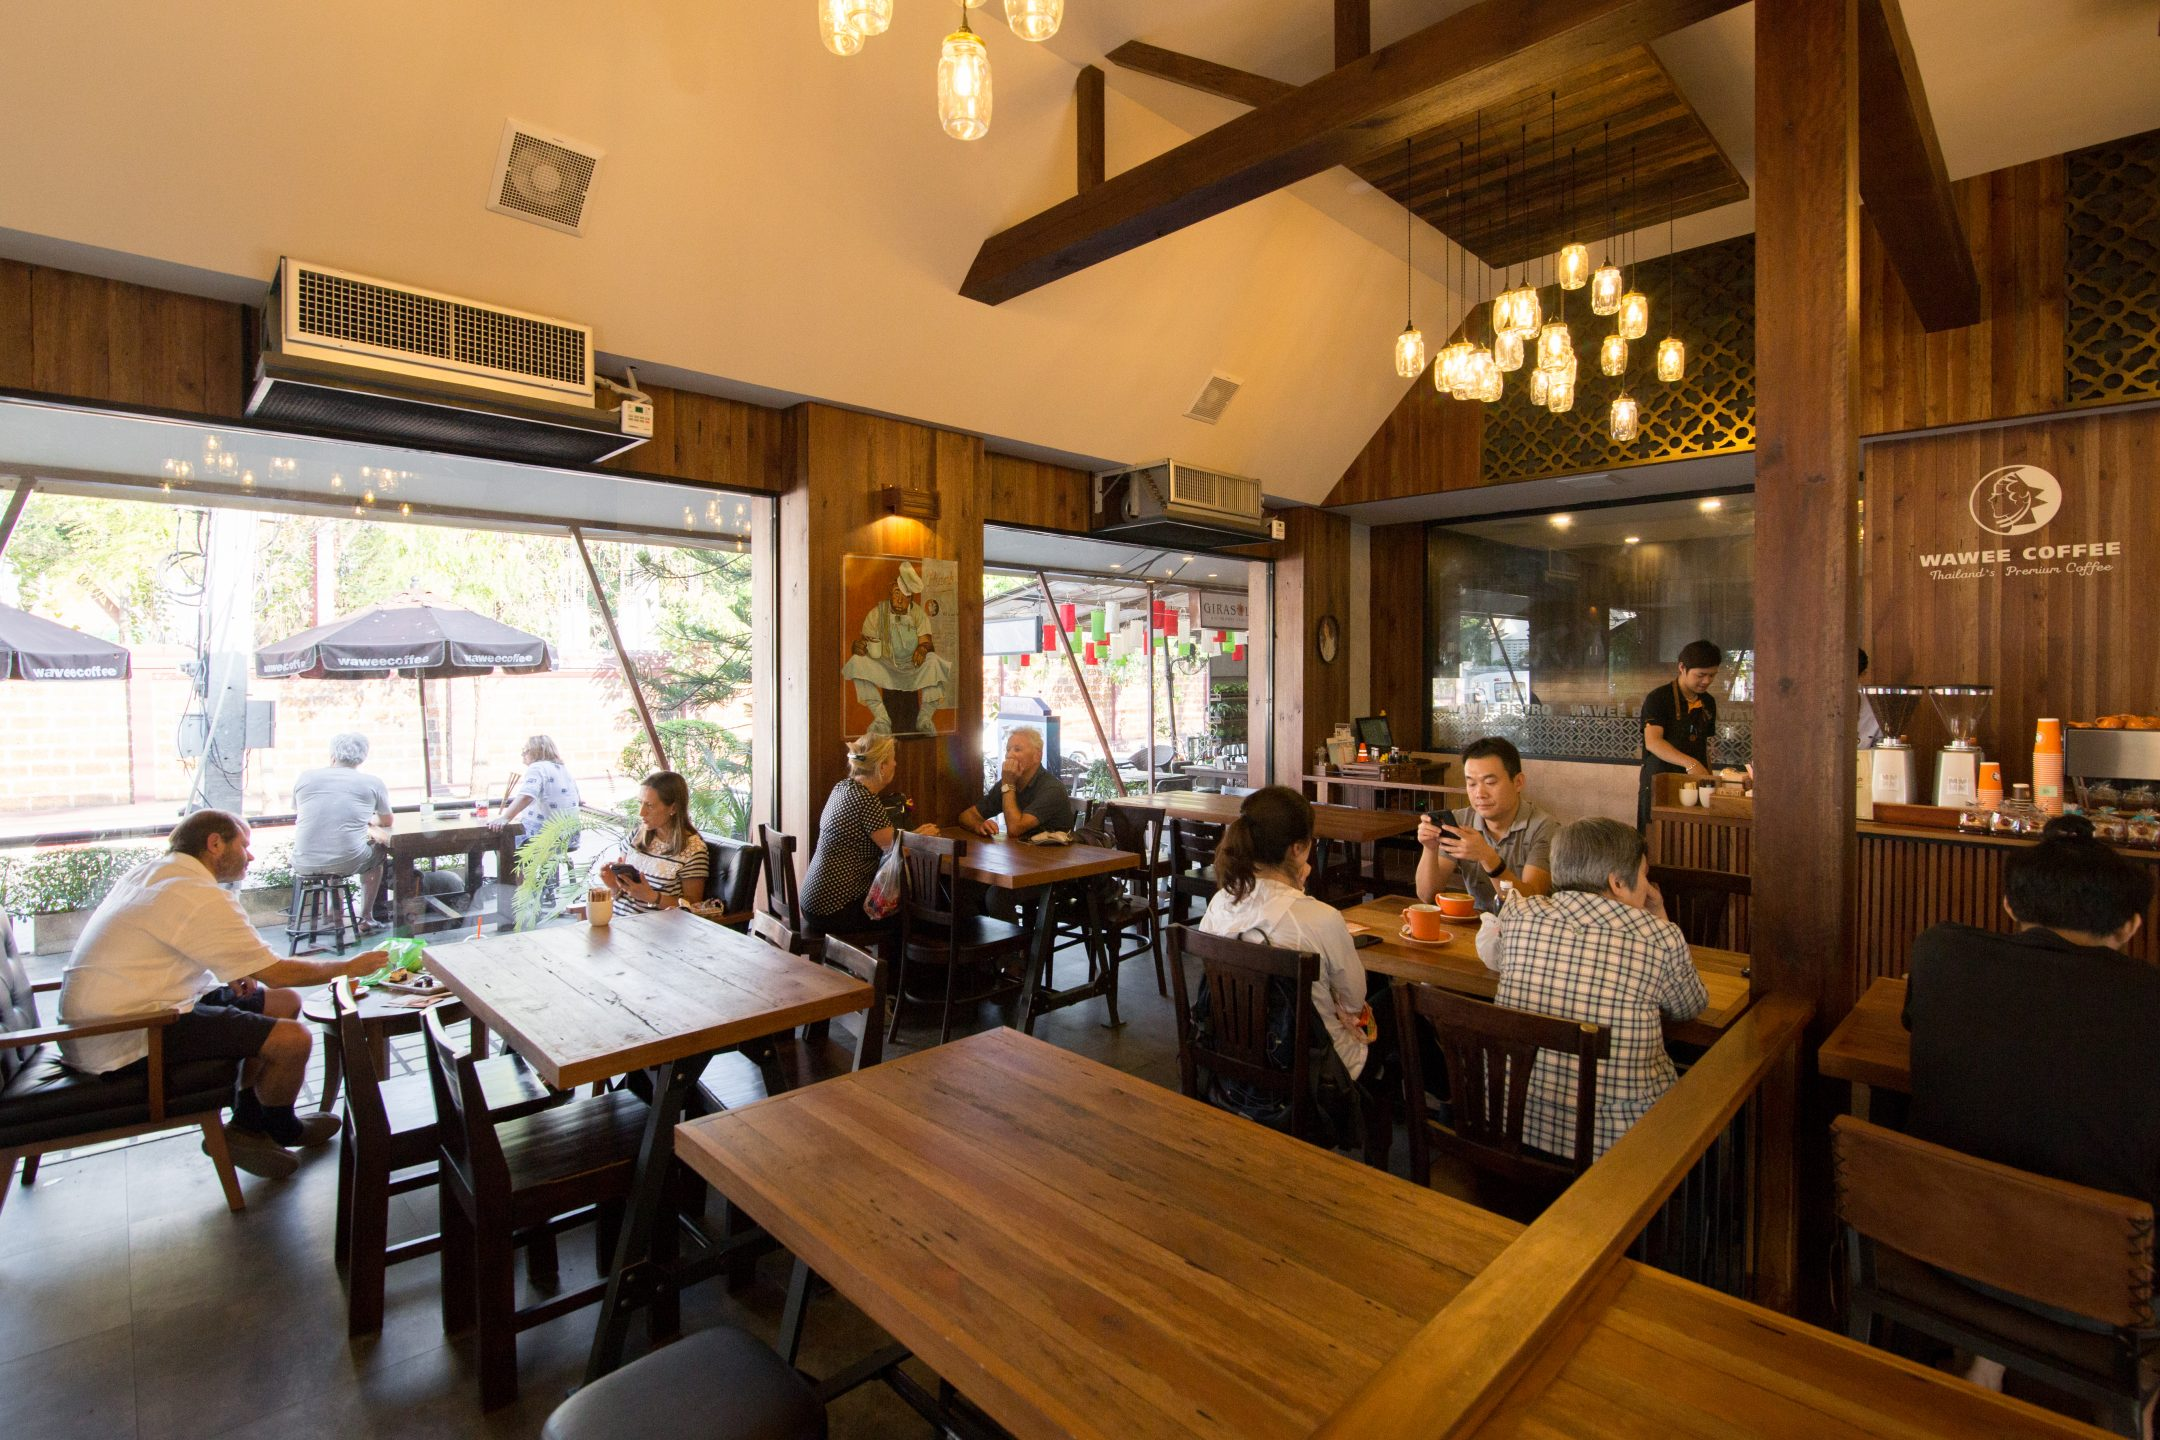 Image result for wawee coffee ratchadamnoen chiang mai